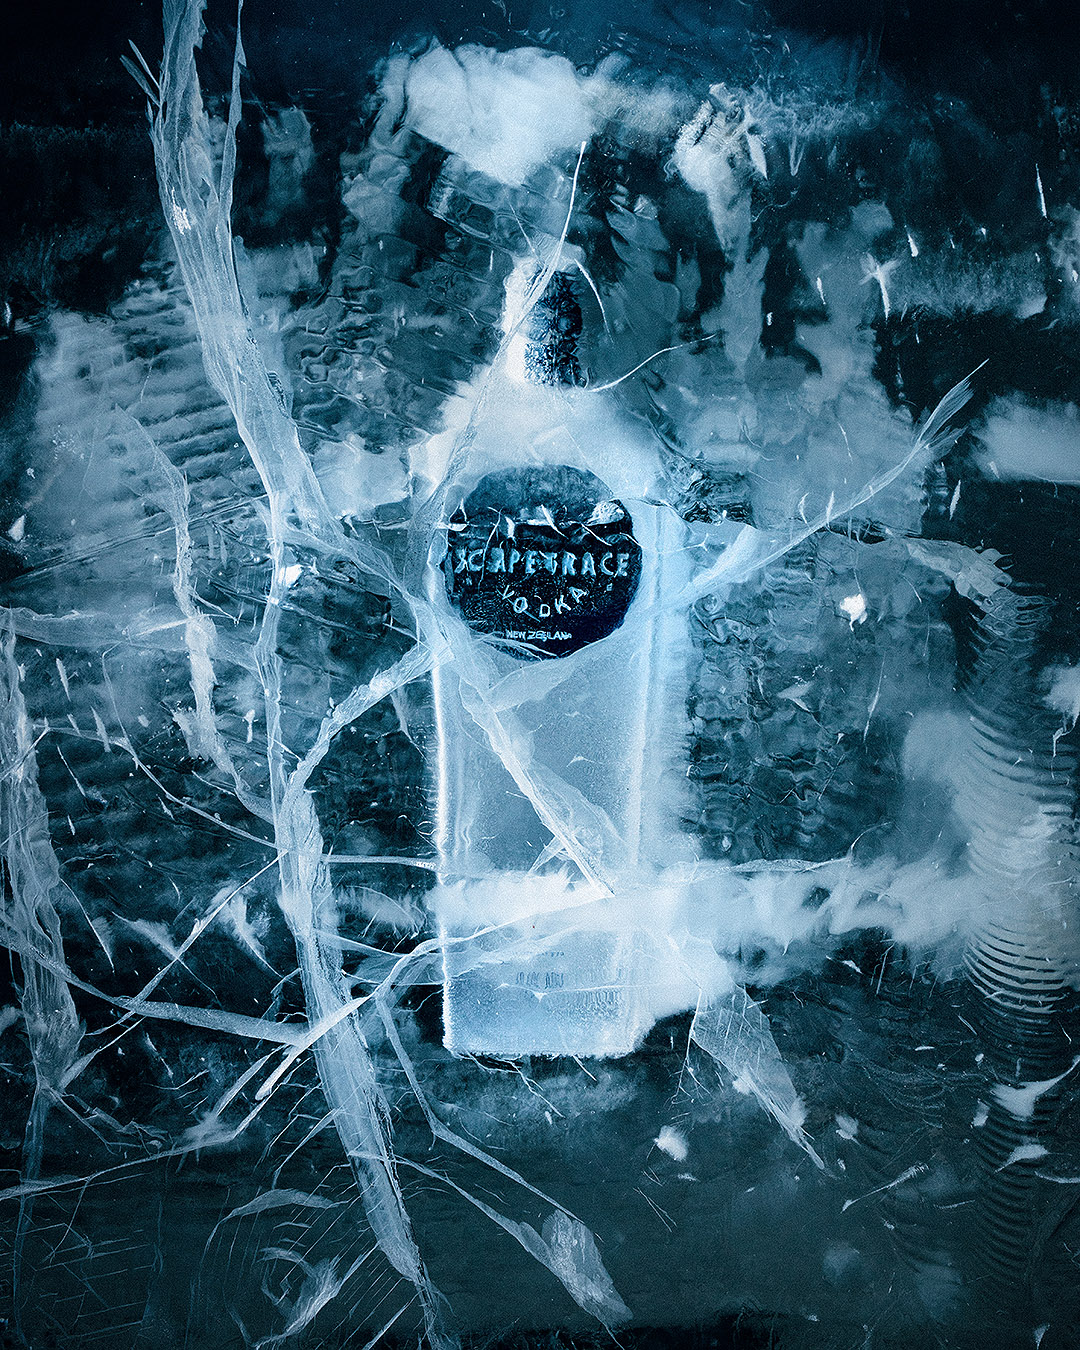 A bottle of Scapegrace vodka dramatically encased in a block of ice.